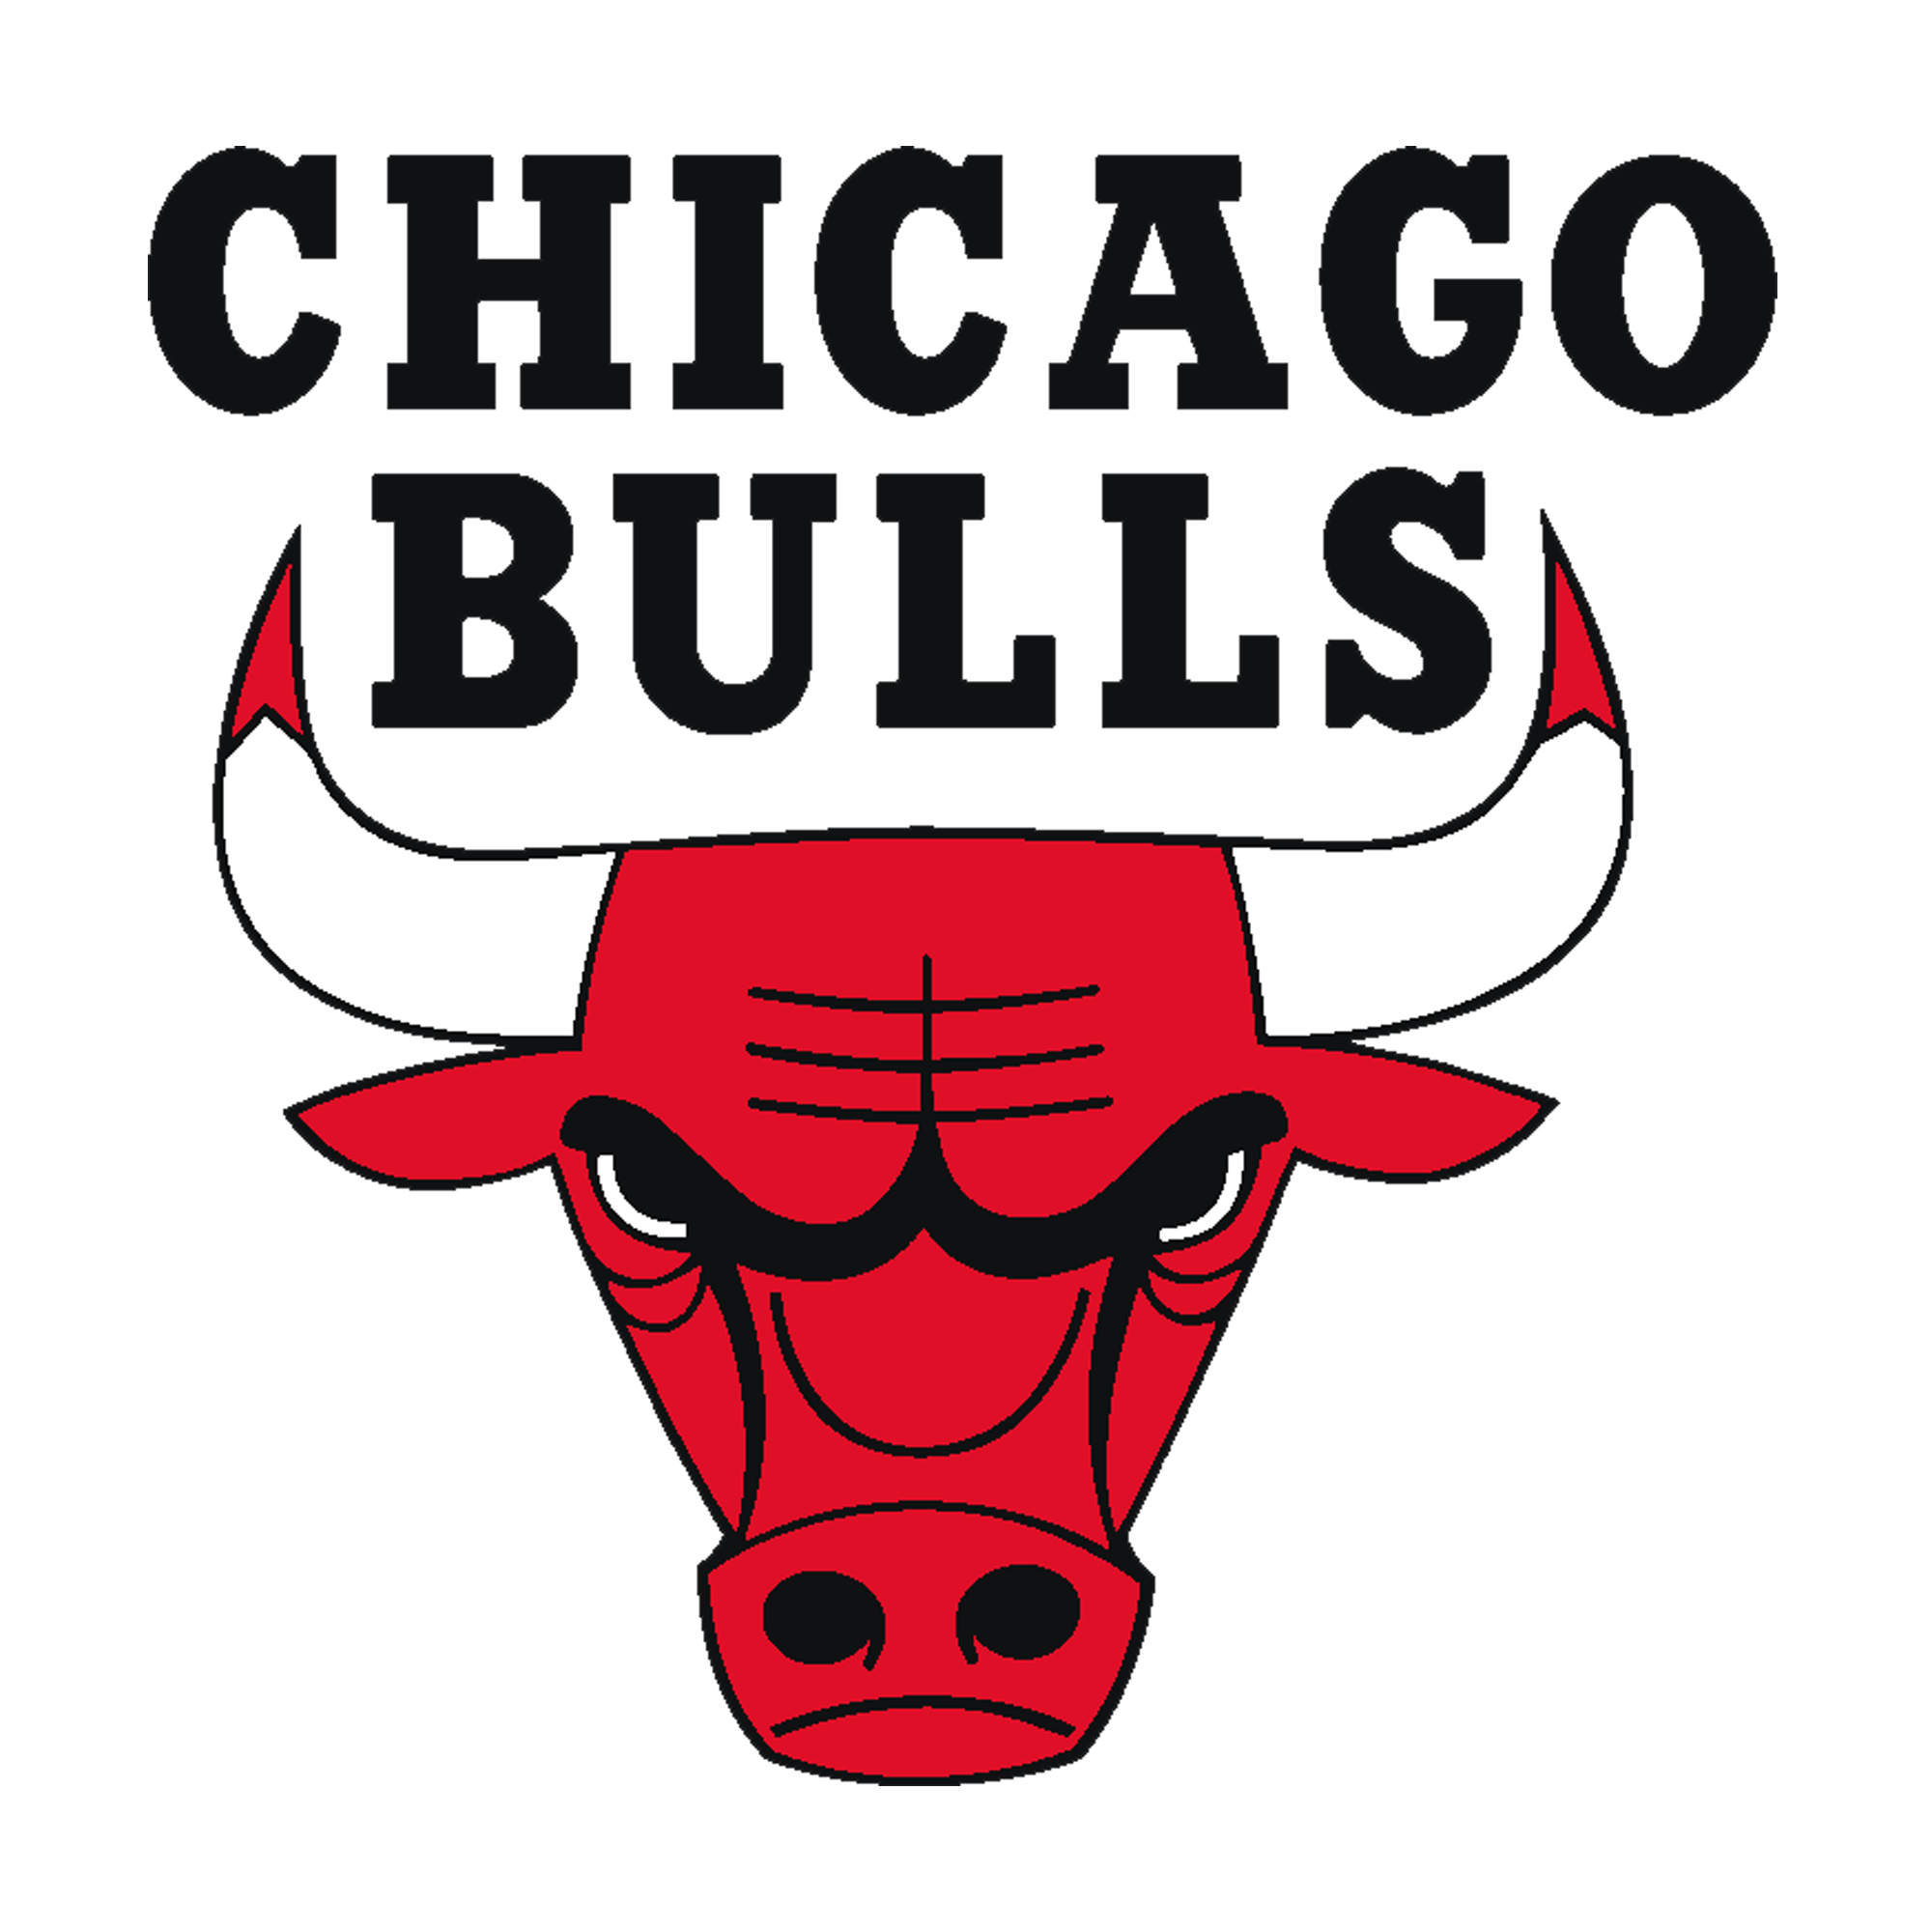 Upside down basketball clipart png freeuse download Chicago Bulls Preview, 2017 Fantasy Basketball png freeuse download